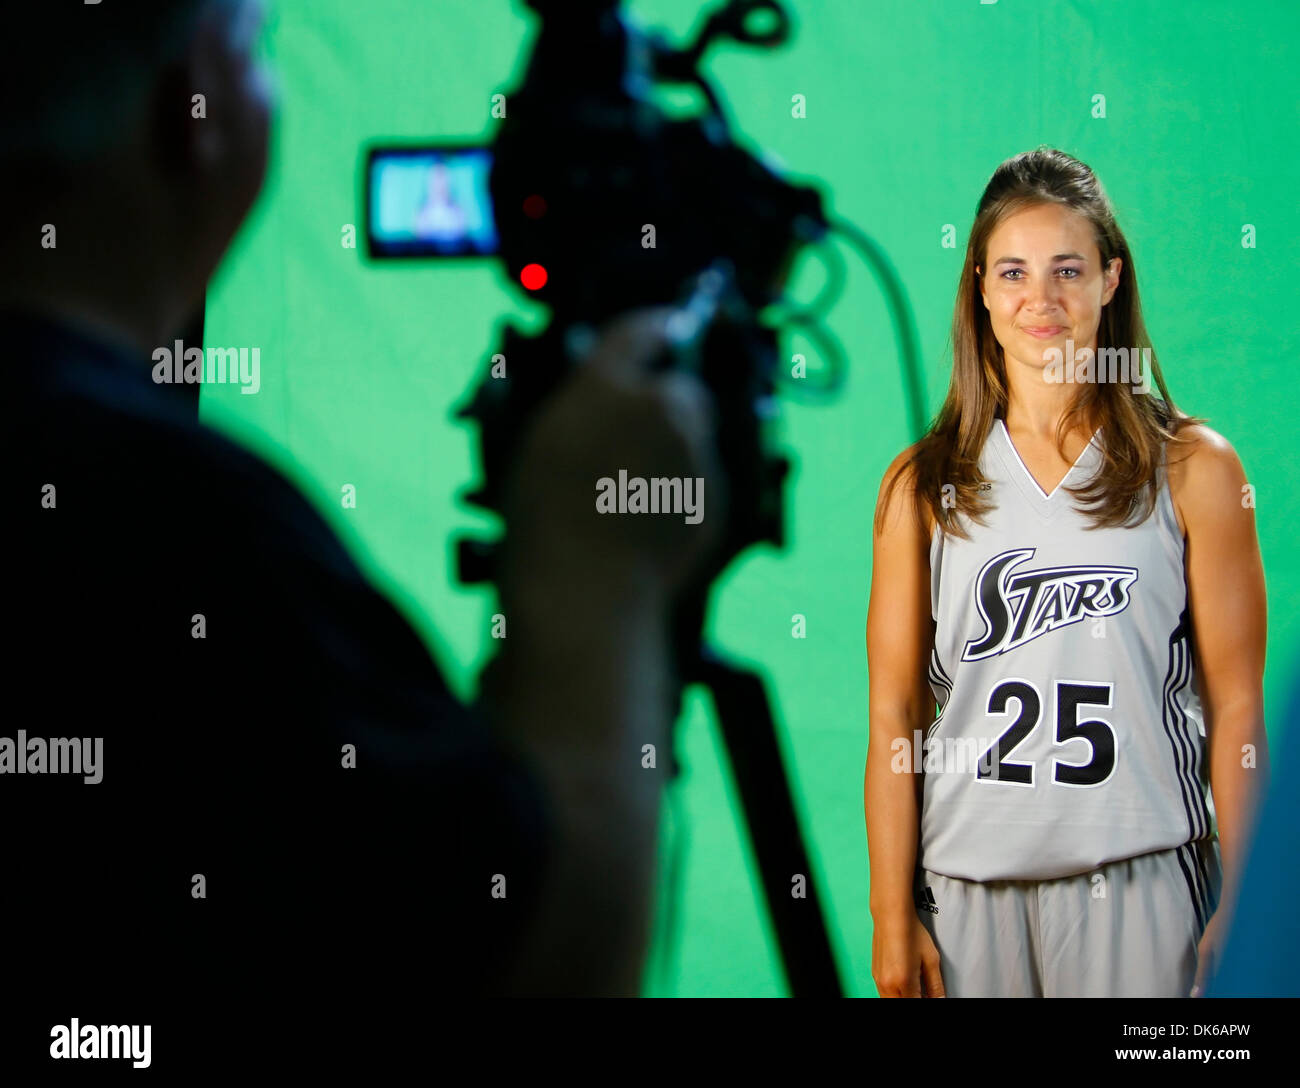 May 19, 2011 - San Antonio, TEXAS, USA - The WNBA's Silver Stars stands in front of a green screen Wednesday May18, 2011 at their practice facility, the Antioch Baptist Church recreation center, during the team's media day. (Credit Image: © San Antonio Express-News/ZUMAPRESS.com) - Stock Image